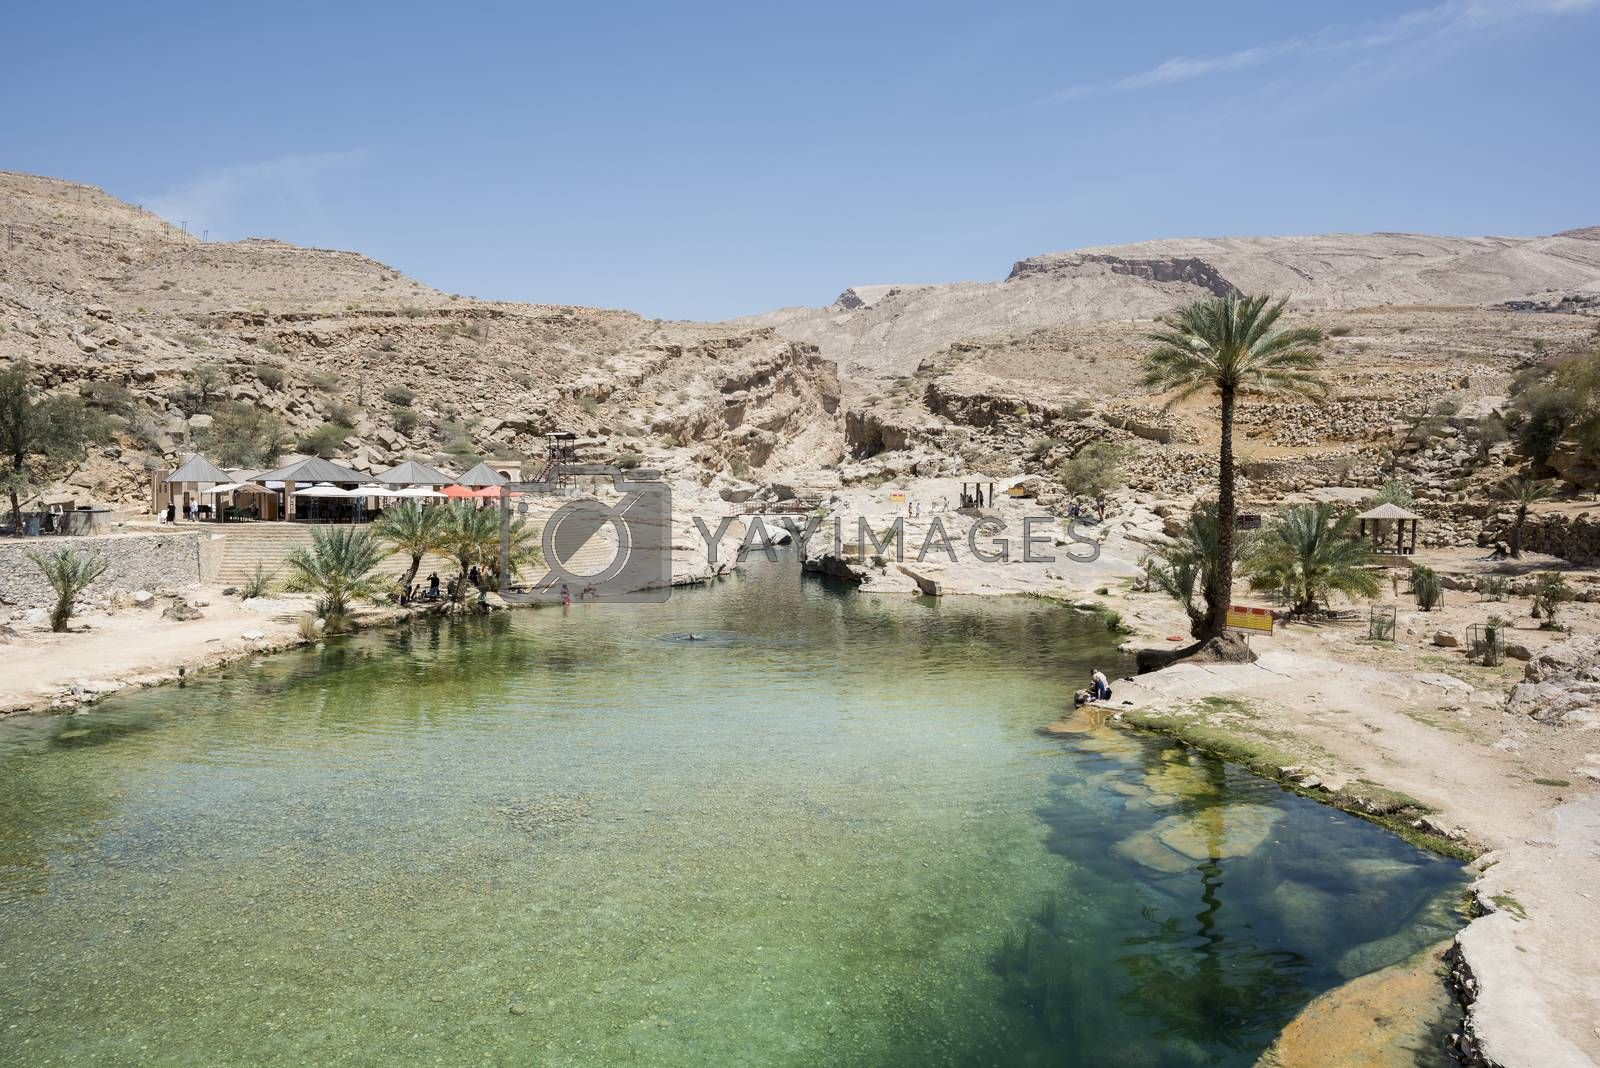 Tourists around Main pool of Wadi Bani Khalid with some going and coming back from the canyon where you can go to see the cave, Oman